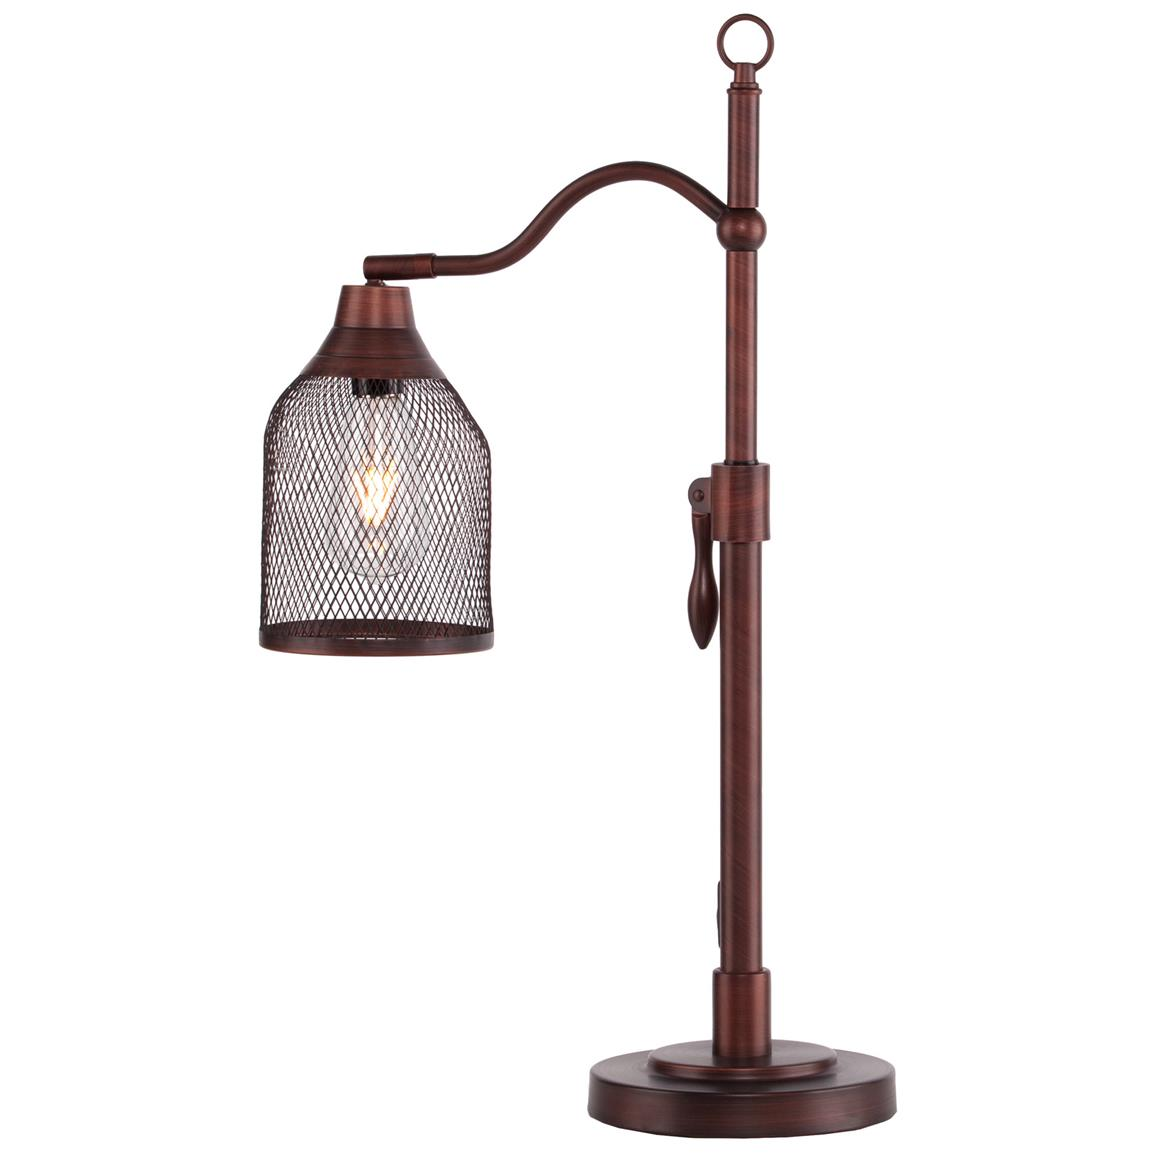 Rigby Table Lamp, Edison Bulb